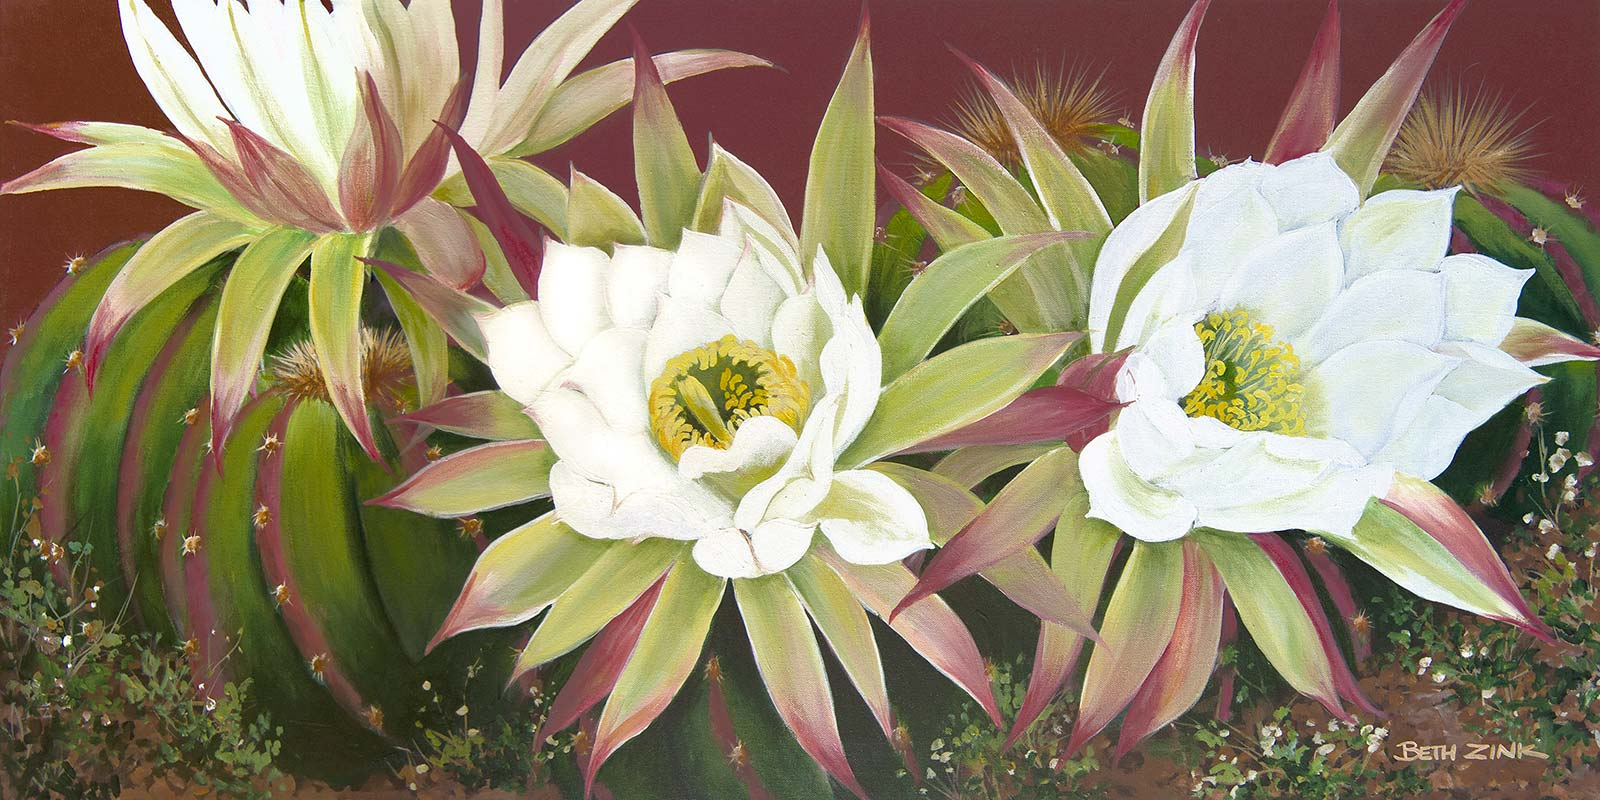 beth zink painting barrel cactus with white flowers